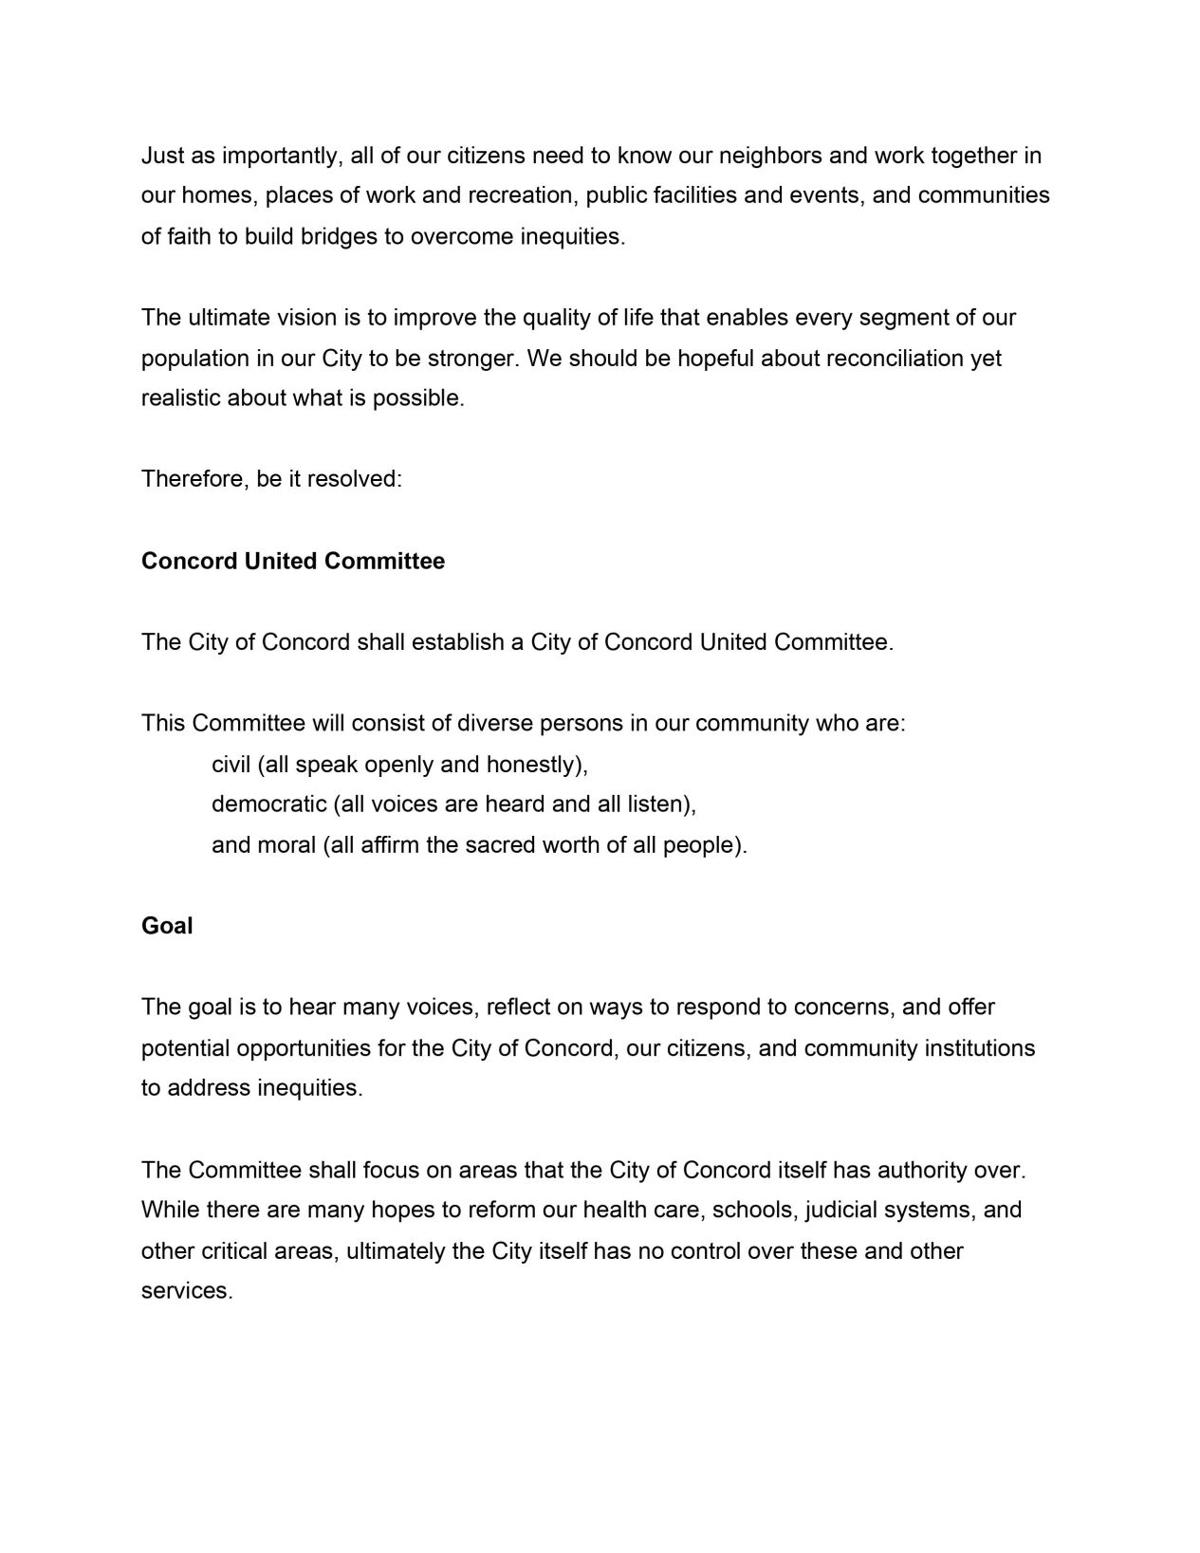 Concord United Committee Petition 2